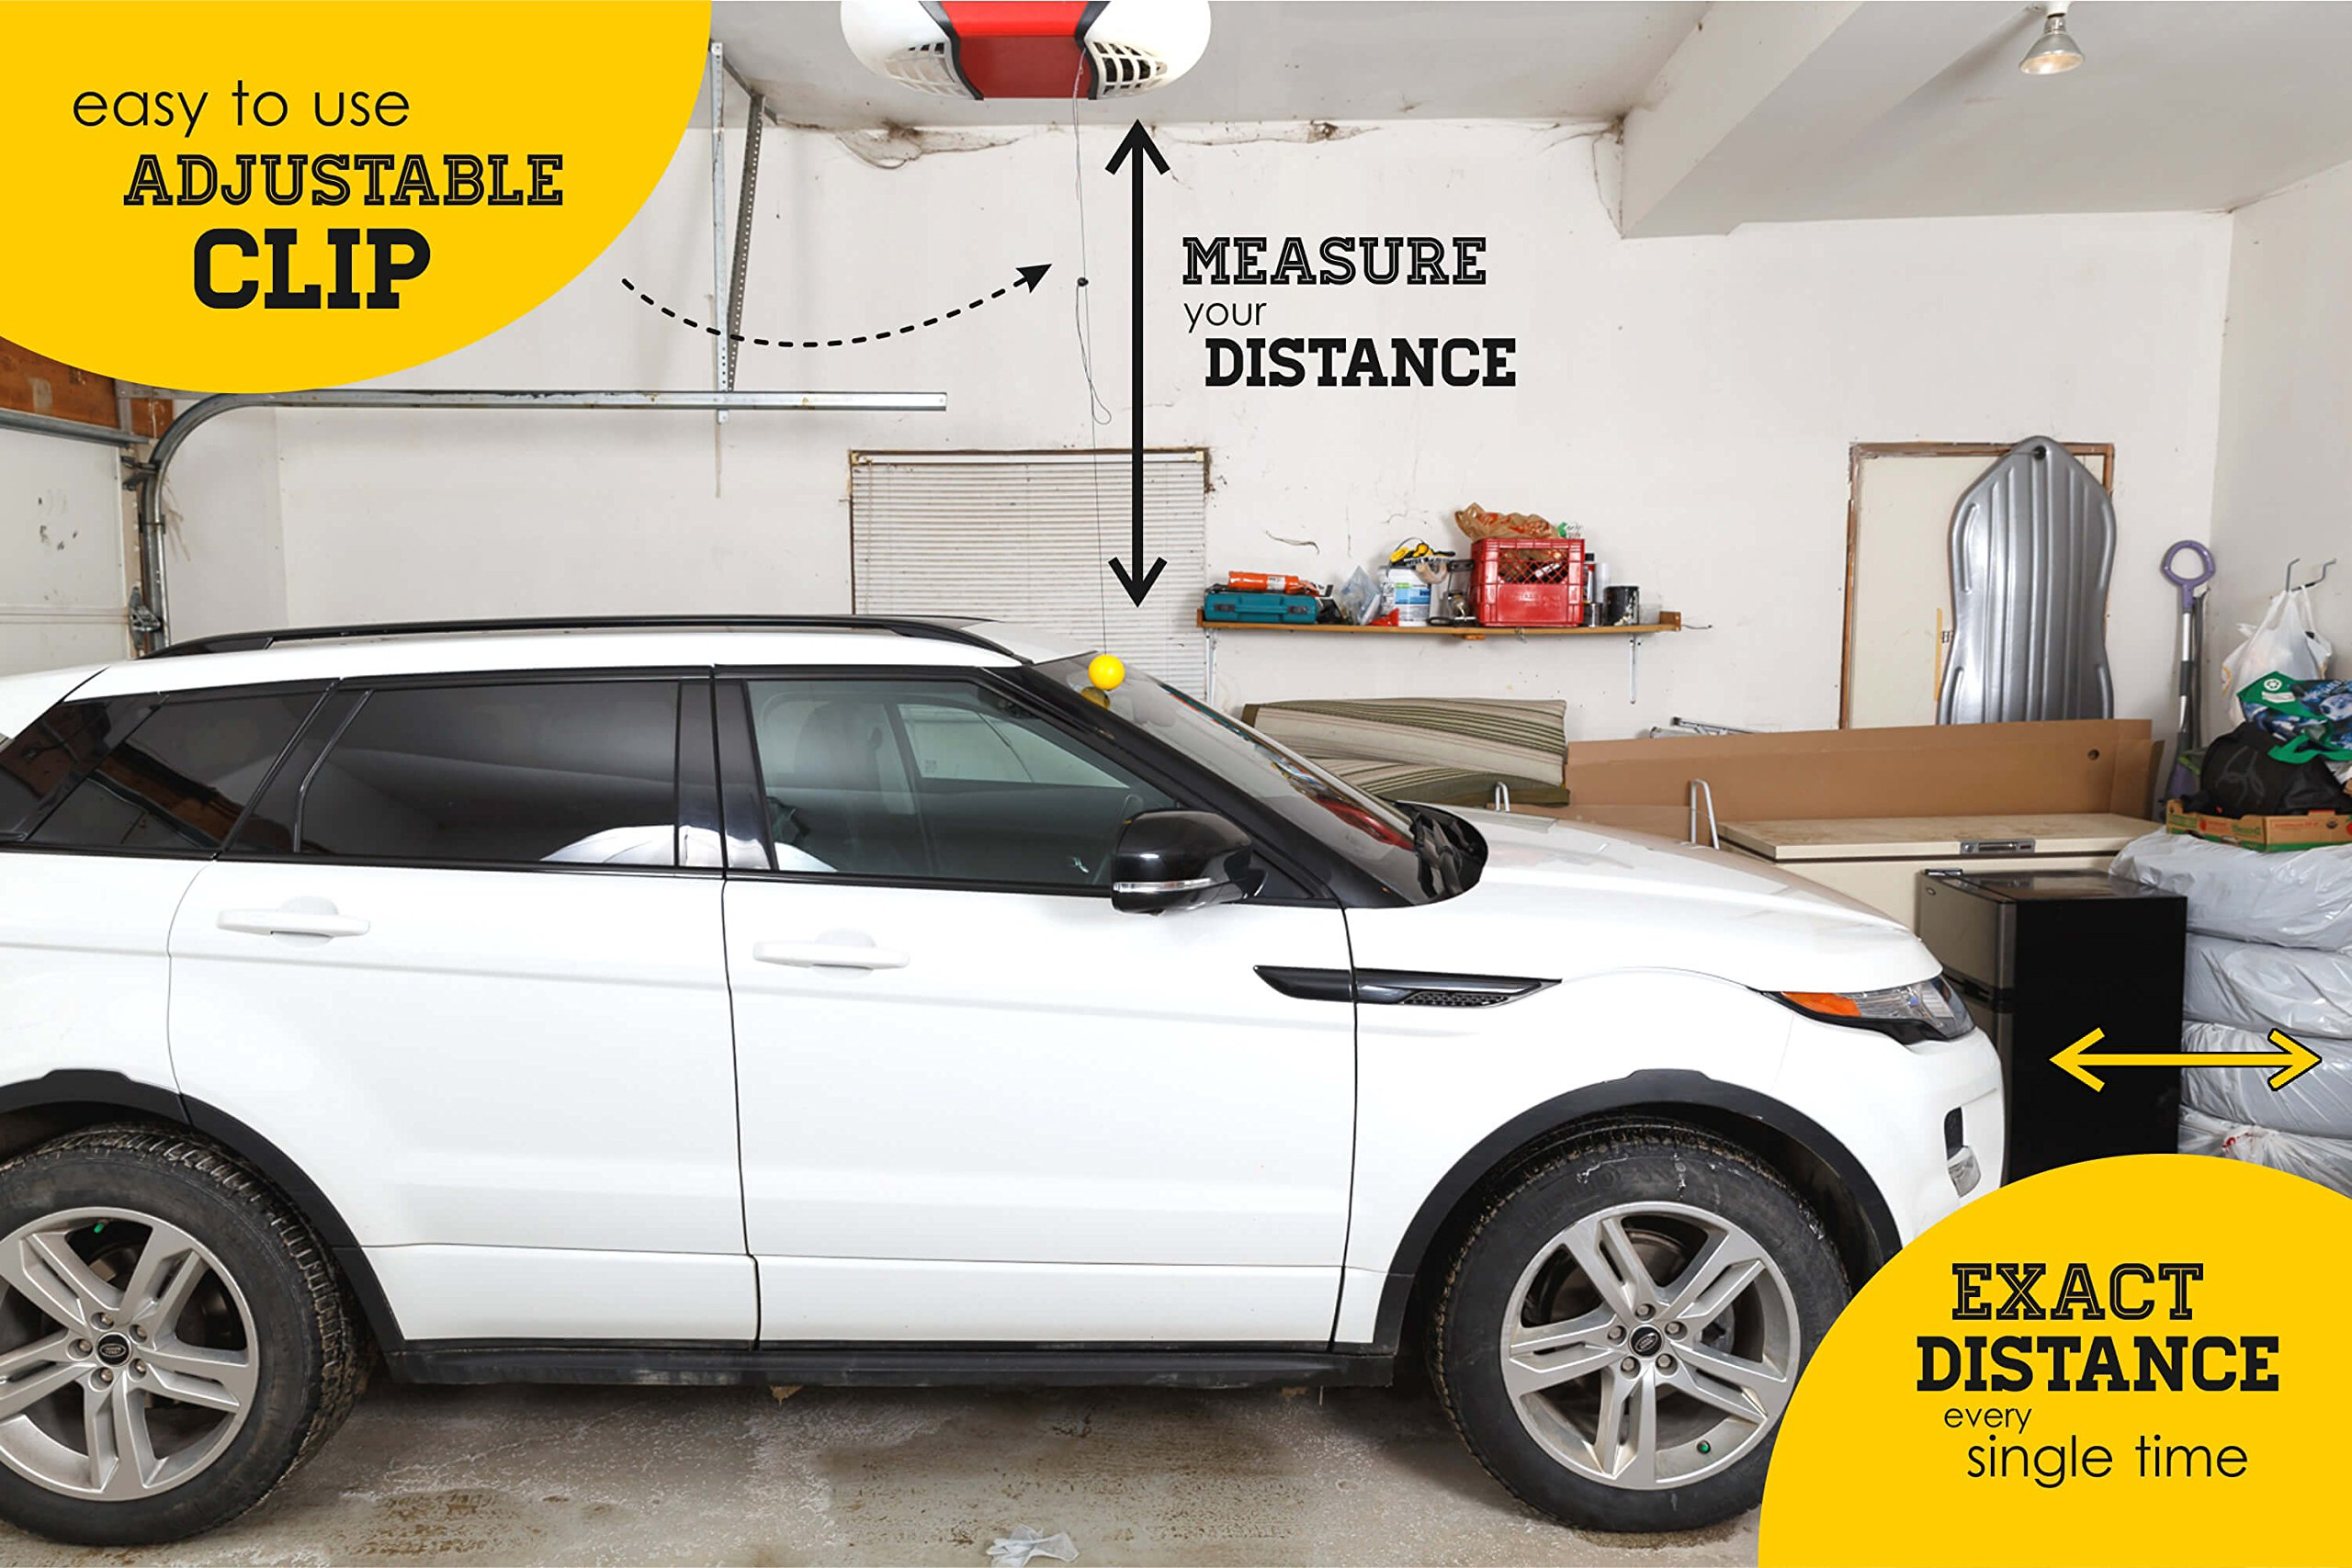 Double Garage Parking Aid - Ball Guide System. Simple to install adjustable parking assistant kit includes a retracting ball sensor assist solution. Perfect Garage Car Stop Indicator for all Vehicles by LetsInnovateLife (Image #3)